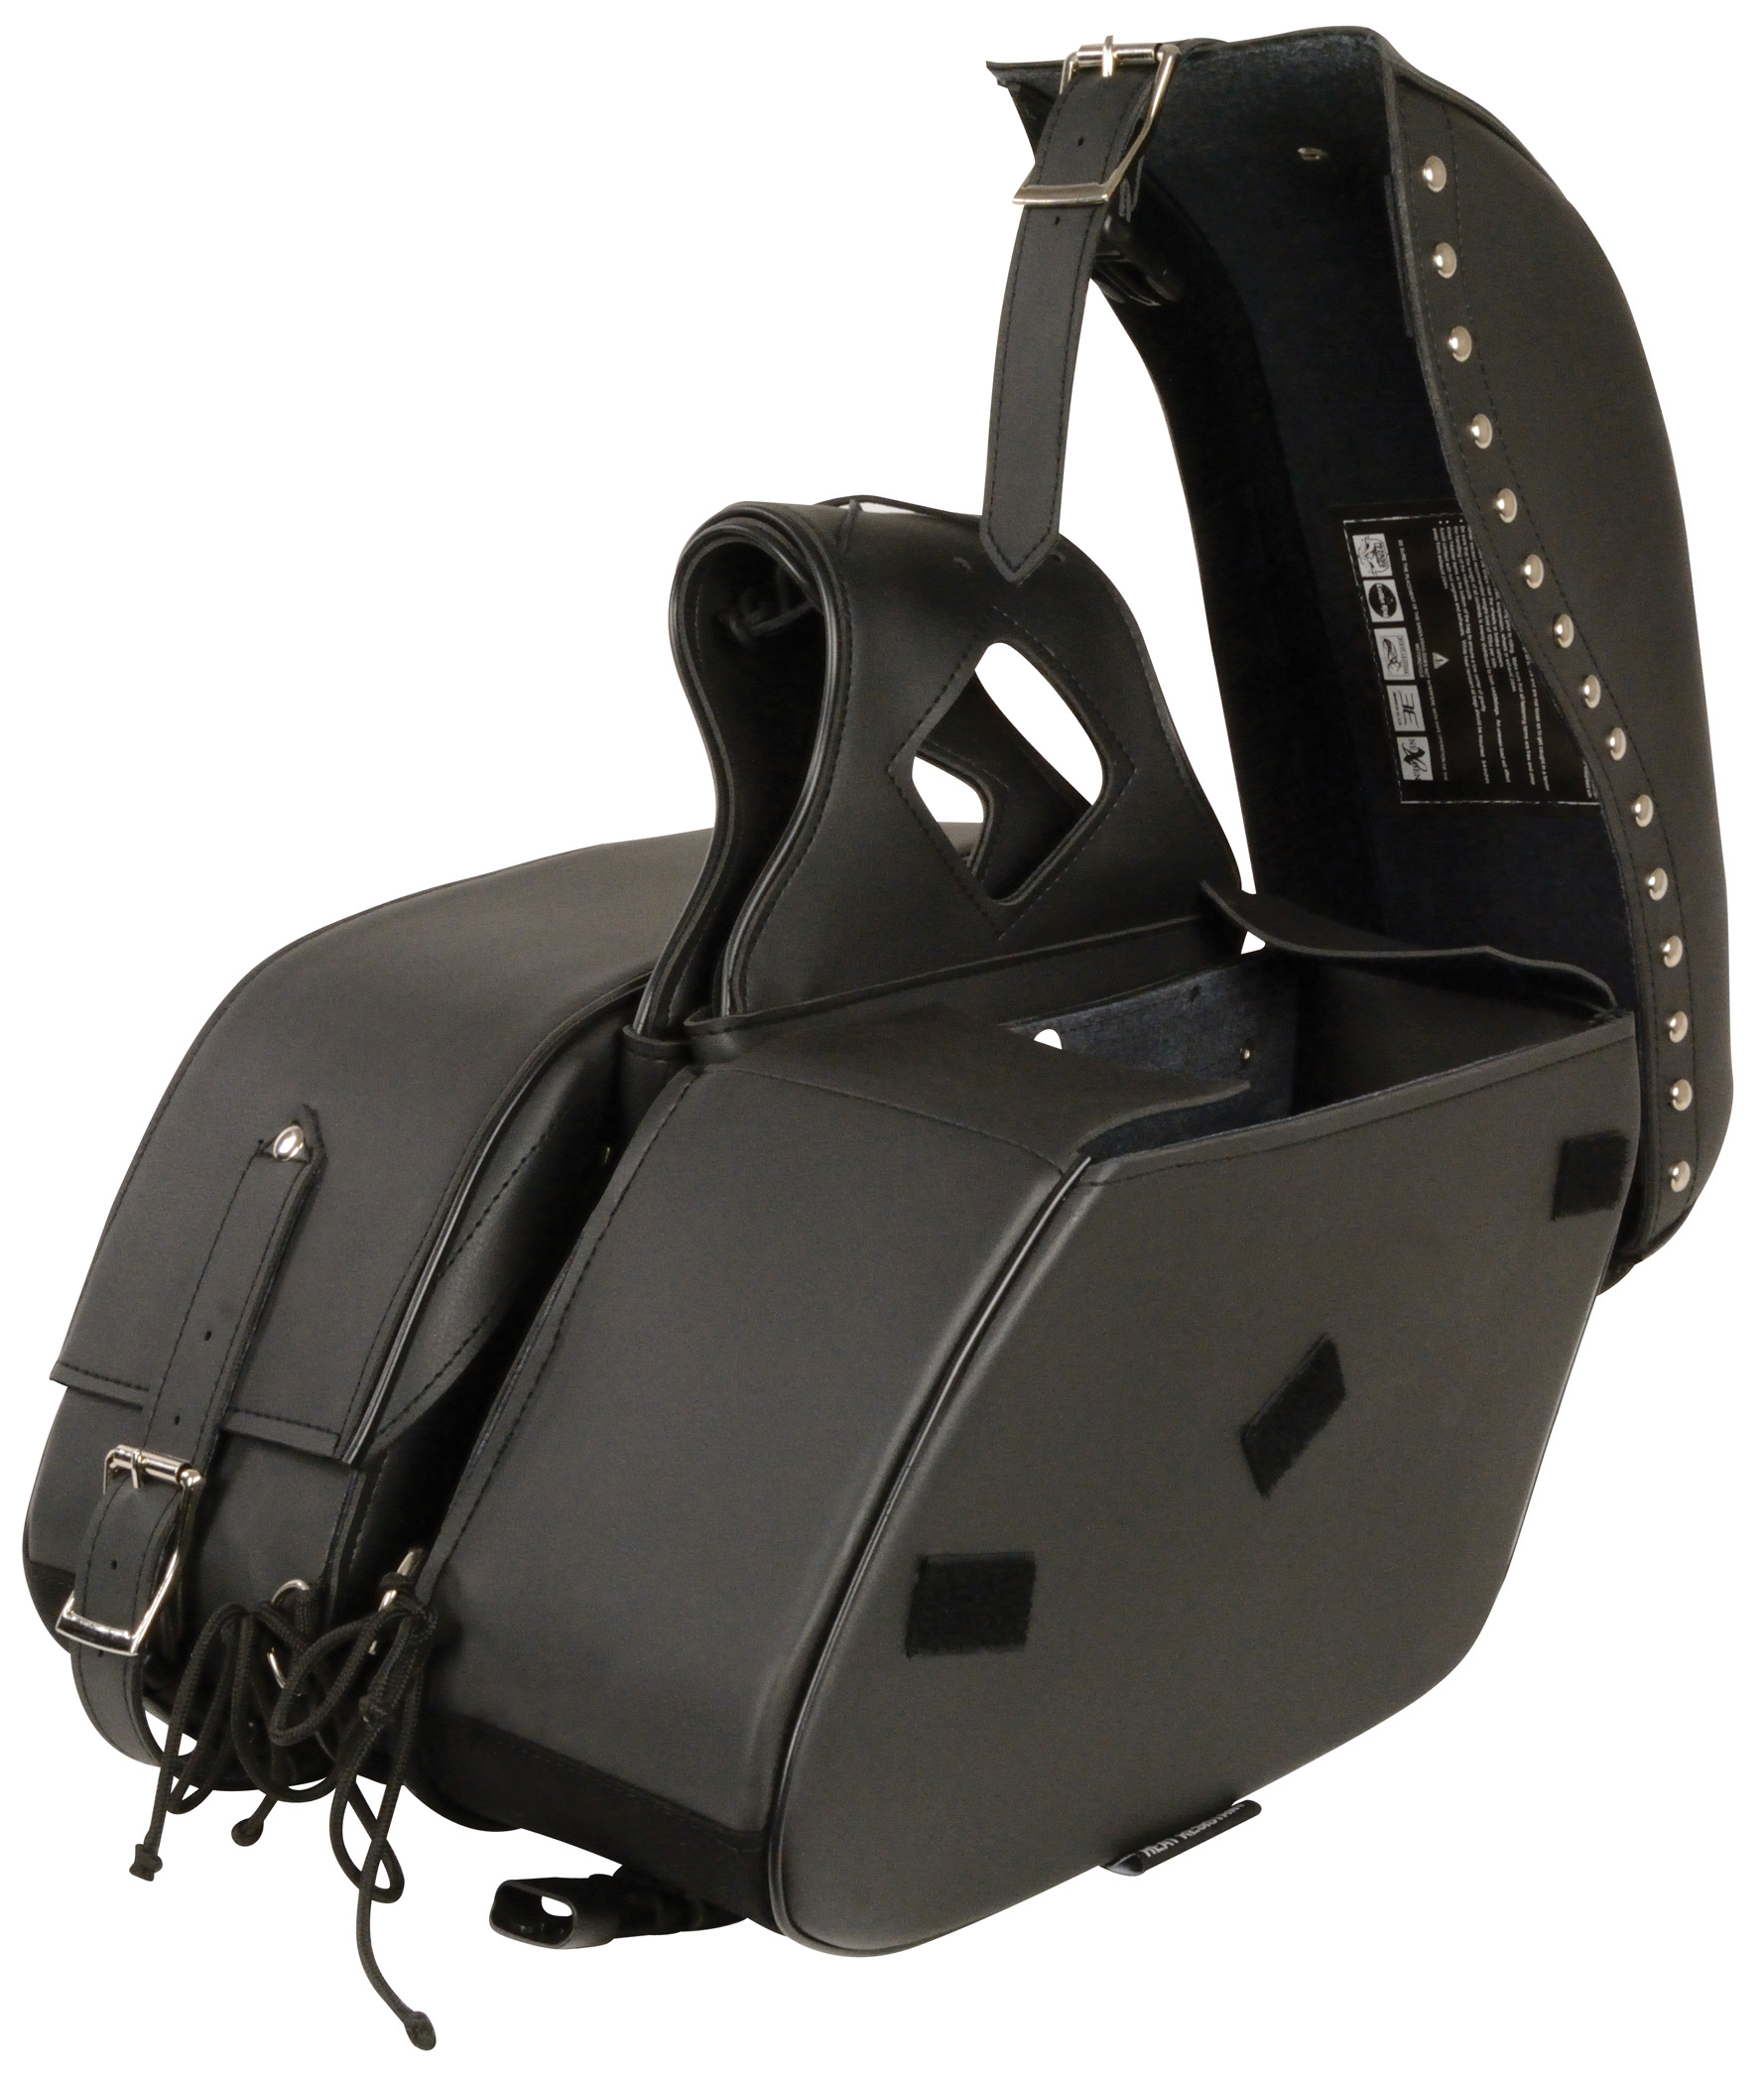 saddlebag for motorcycles